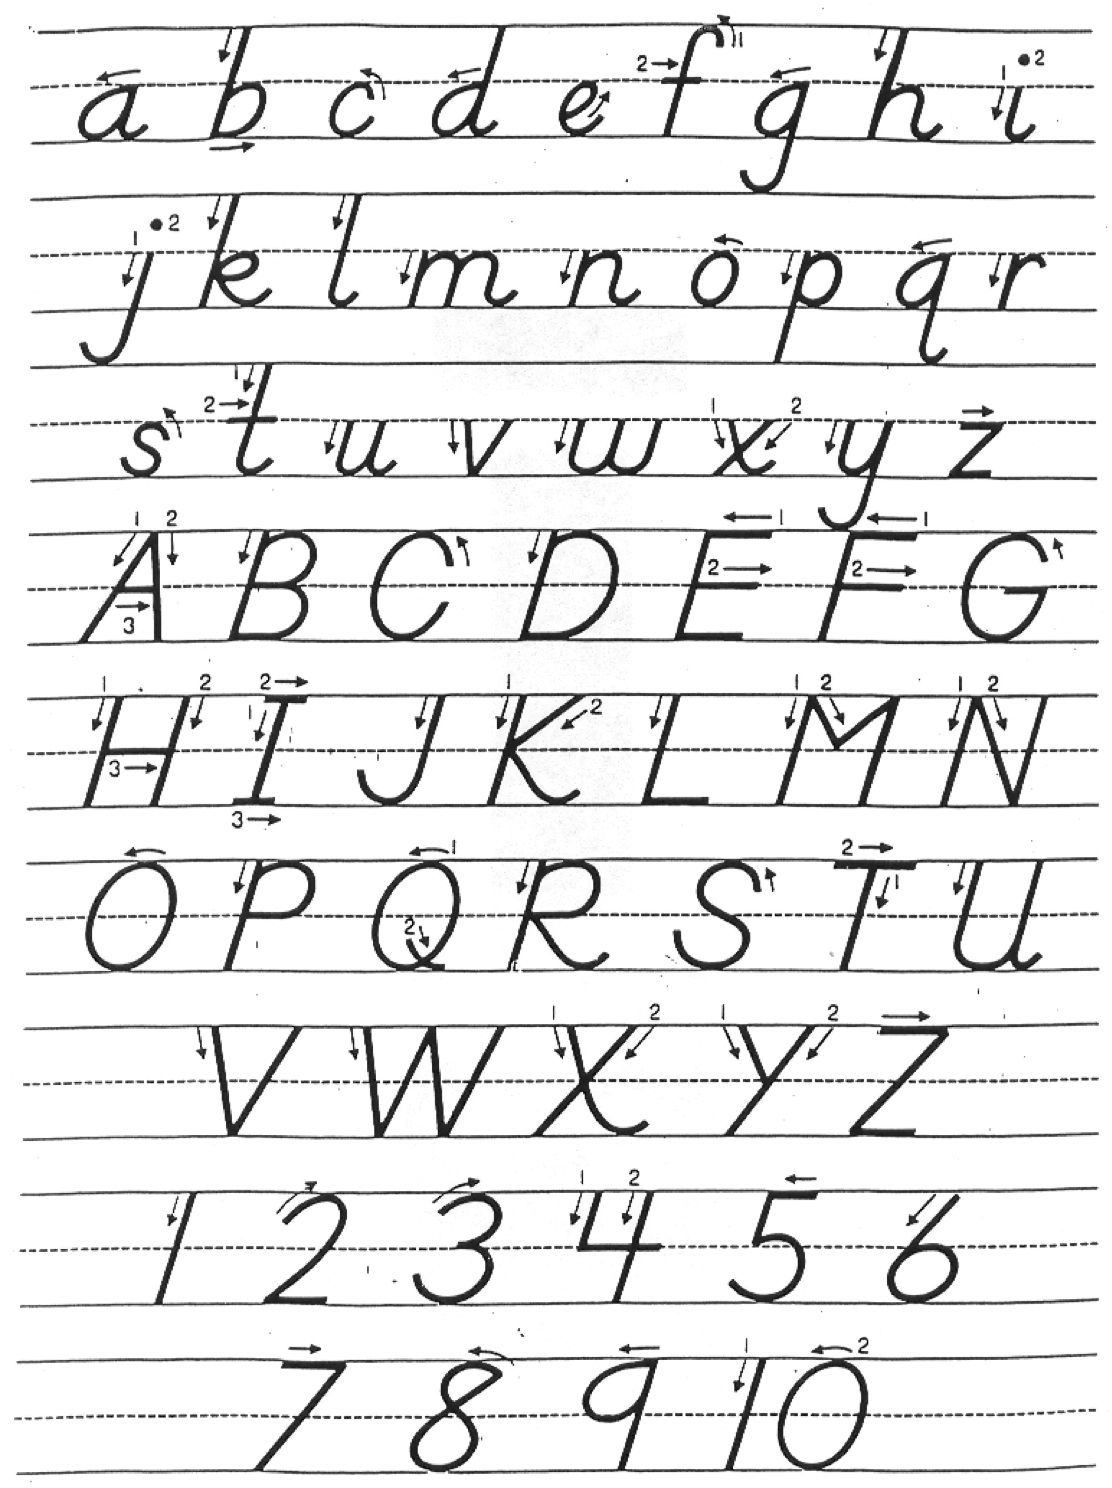 Image Result For D'nealian Handwriting | Handwriting intended for D'nealian Alphabet Tracing Worksheets